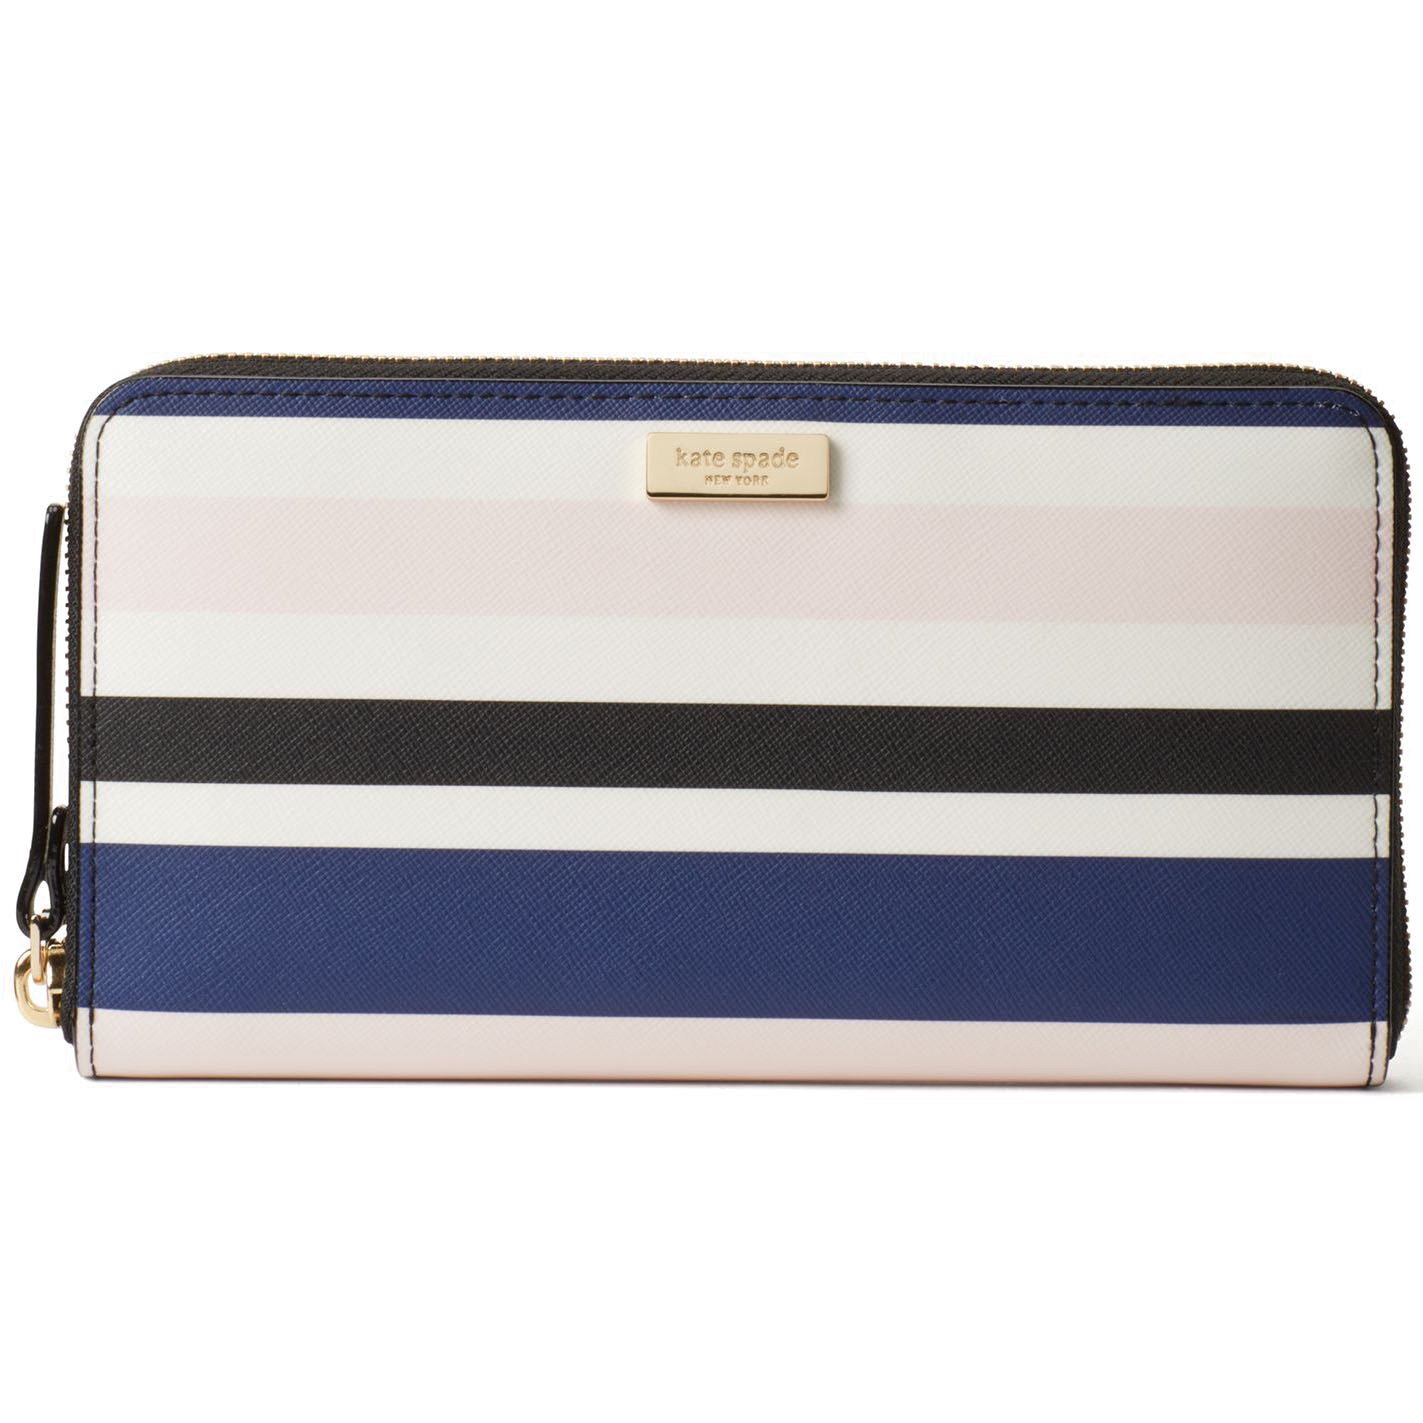 Kate Spade Laurel Way Printed Neda Navy Blue Cruise Stripes # WLRU3020